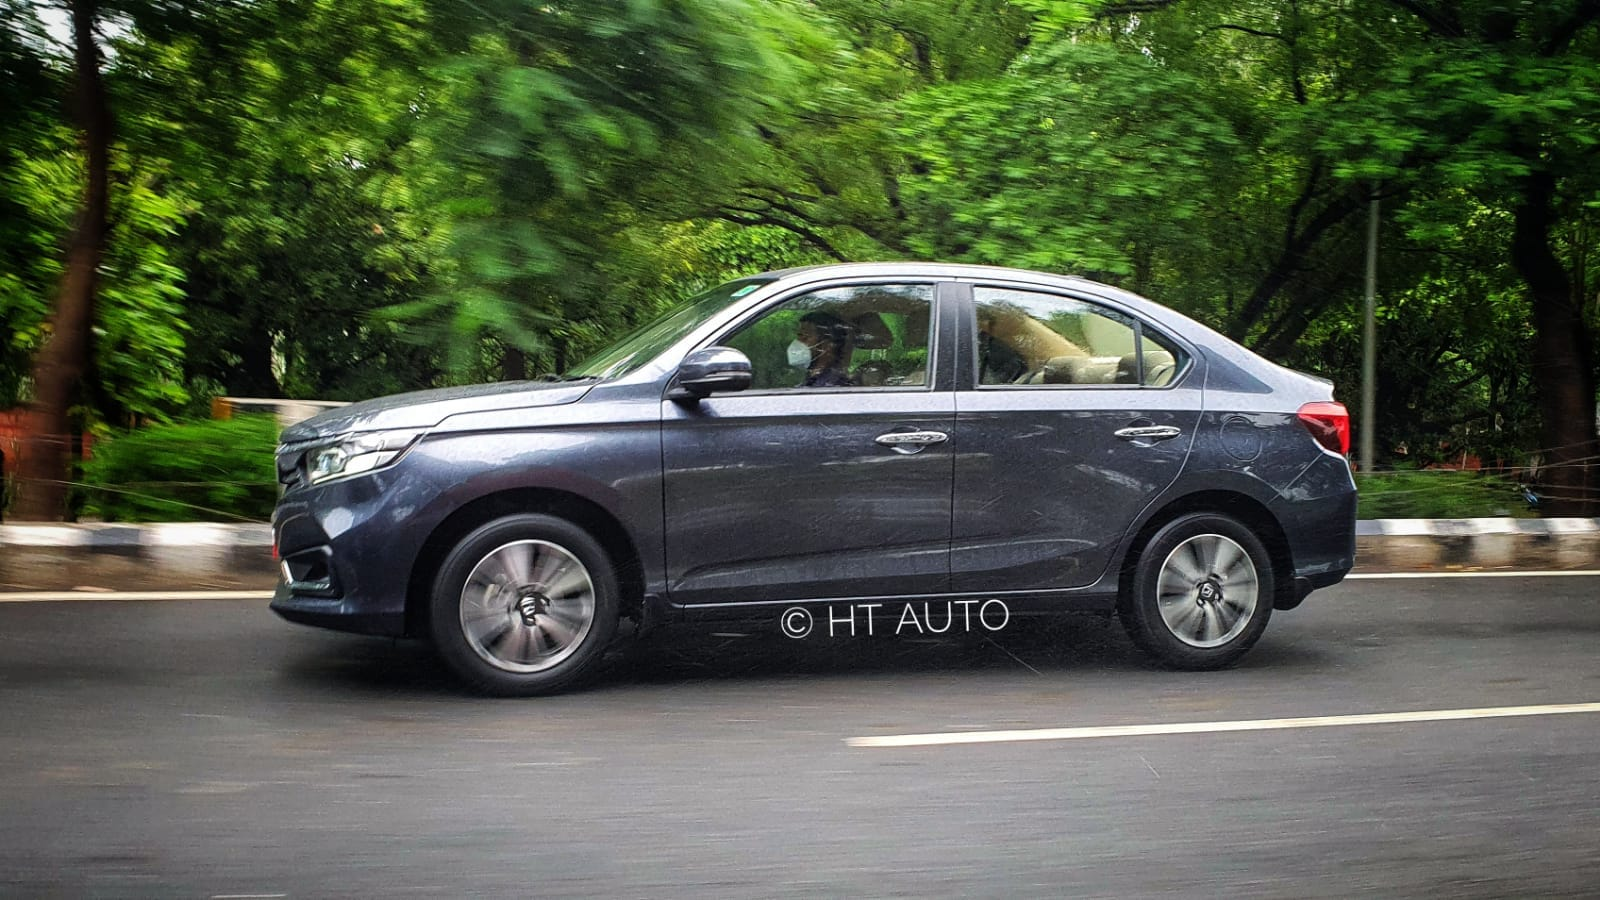 Honda Amaze was given a generation change back in 2018 and now a new mild makeover has been introduced as a mid-cycle update. (HT Auto/Sabyasachi Dasgupta)